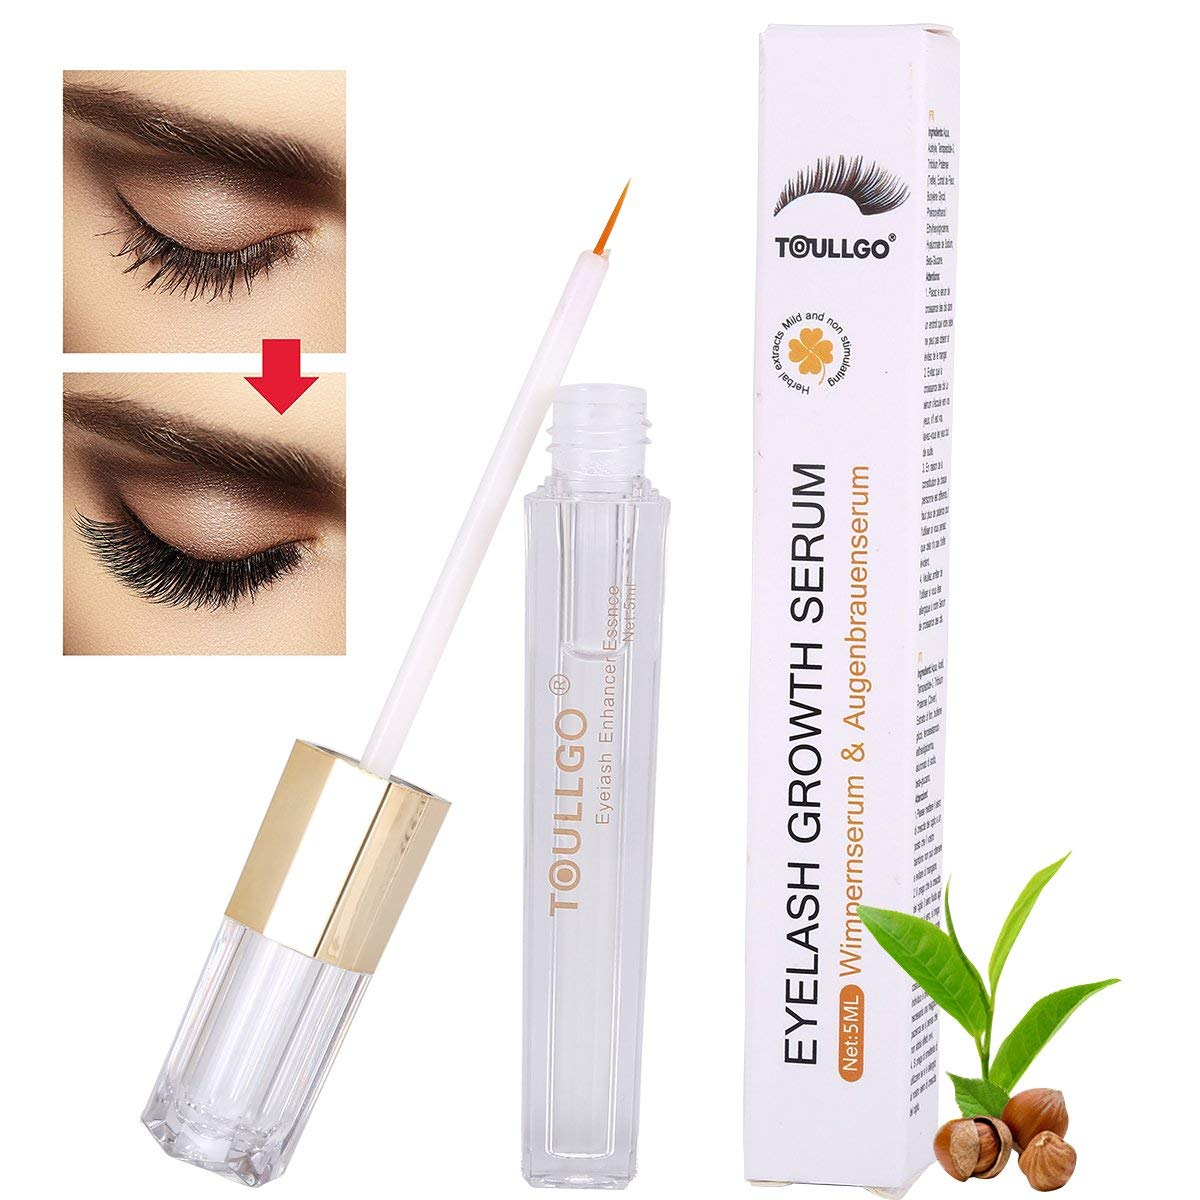 aa55d6595a0 Get Quotations · Eyelash Enhancer, eyelash growth serum, Lash & Brow  Booster Serum, Eyelash Growth Enhancer